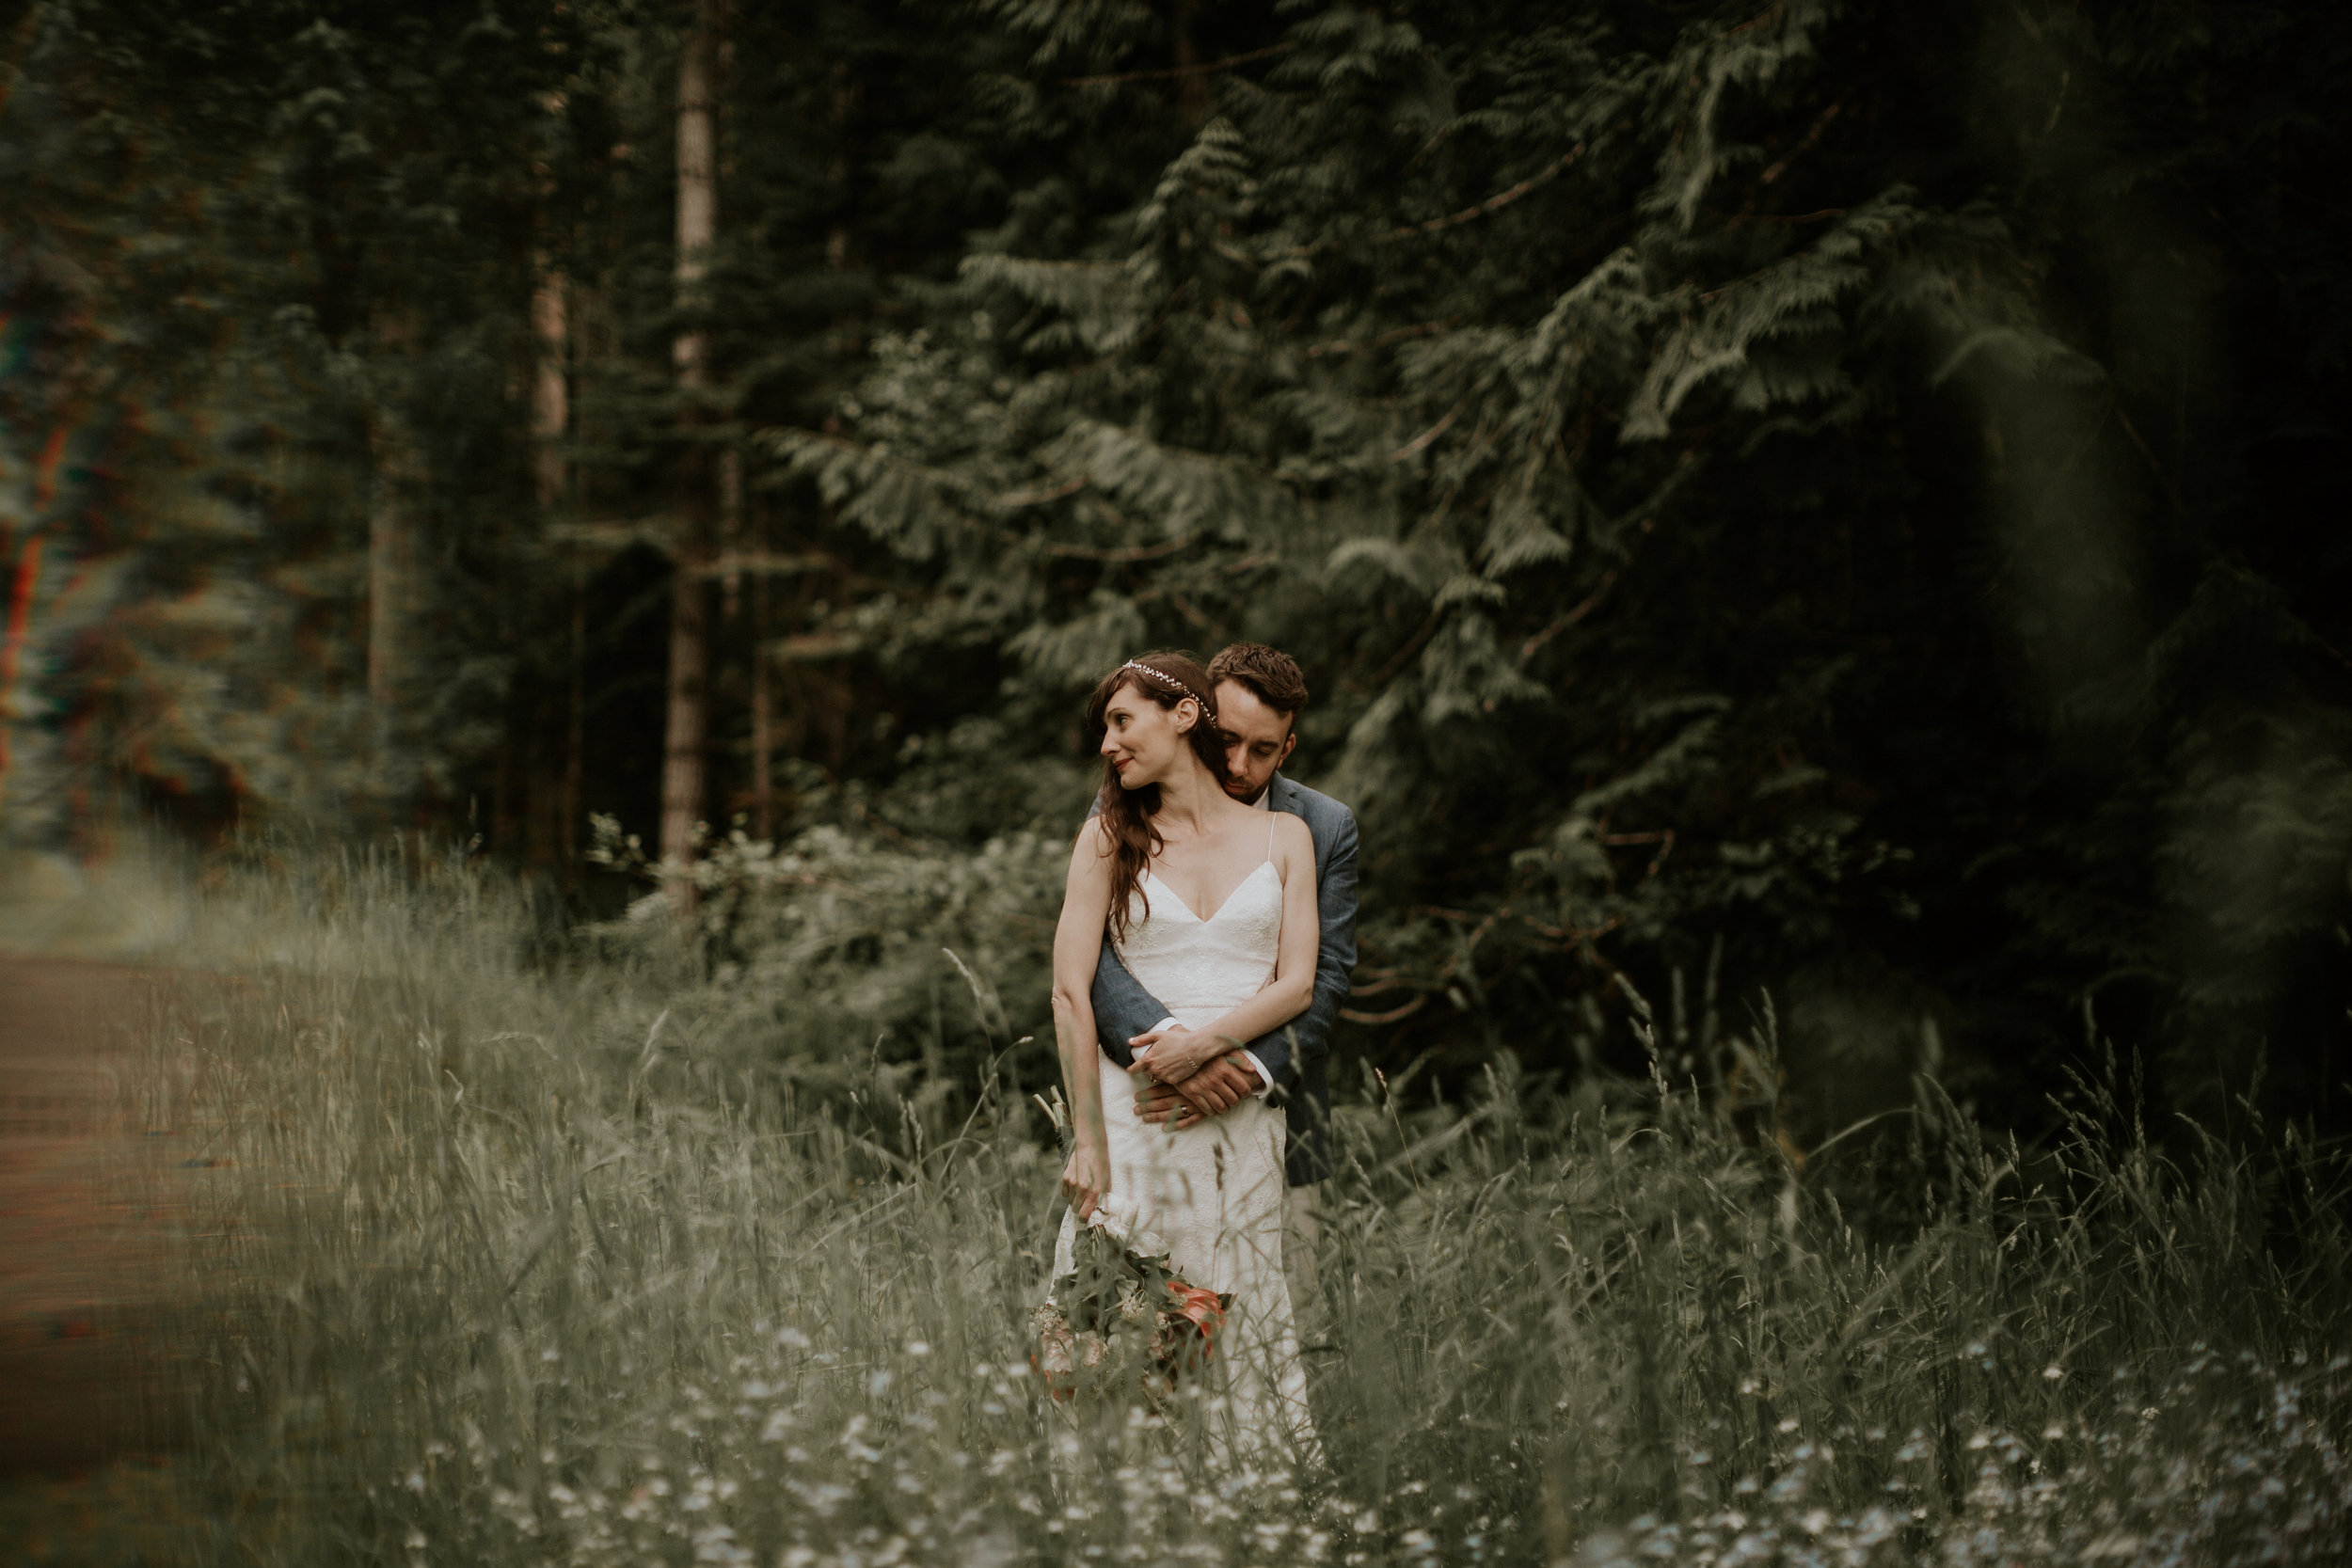 PNW-elopement-wedding-engagement-olympic national park-port angeles-hurricane ridge-lake crescent-kayla dawn photography- photographer-photography-kayladawnphoto-272.jpg